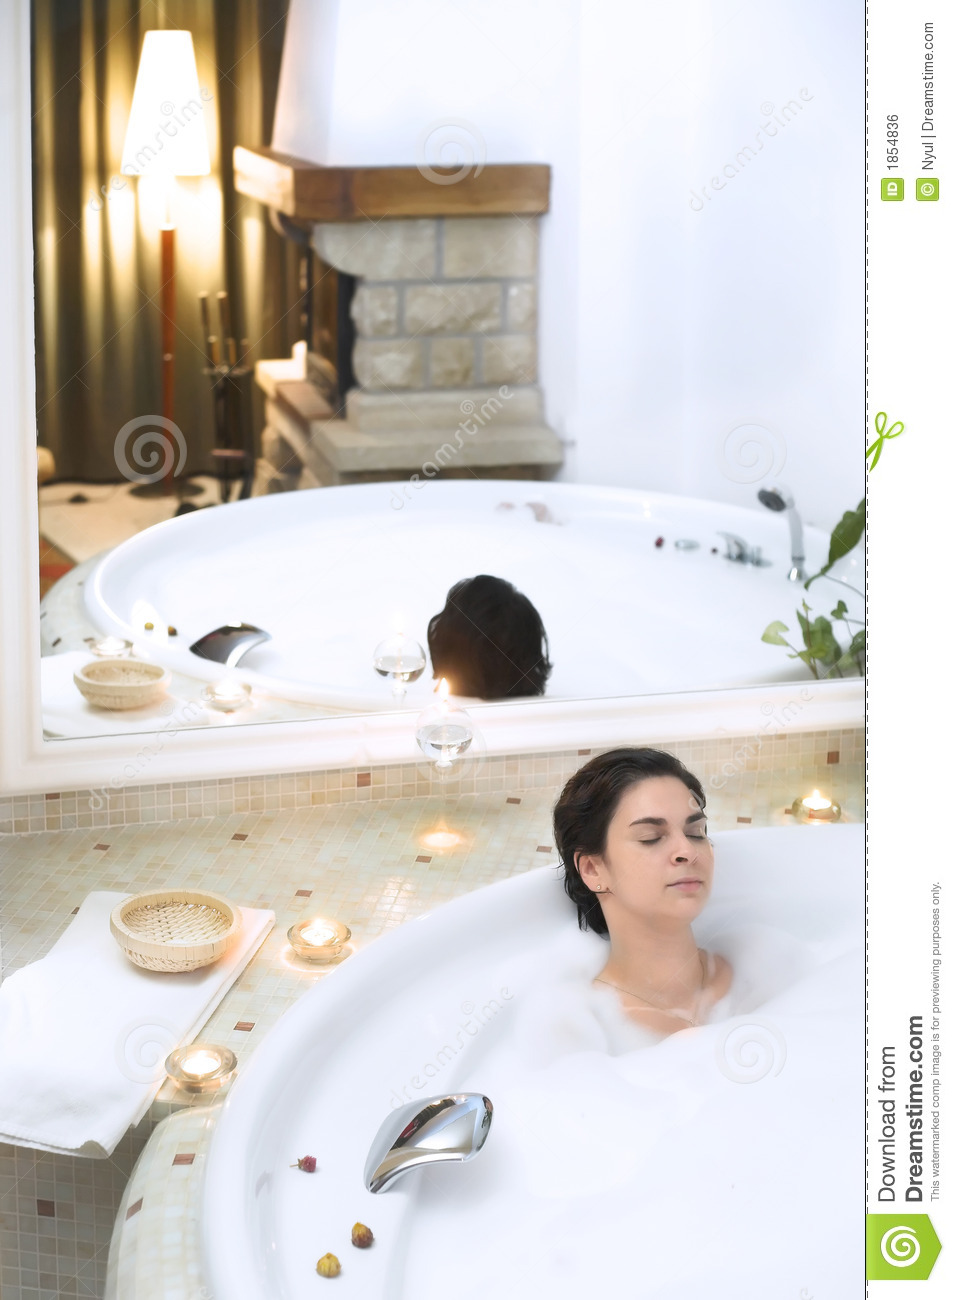 Bathtub Bubbles Vector